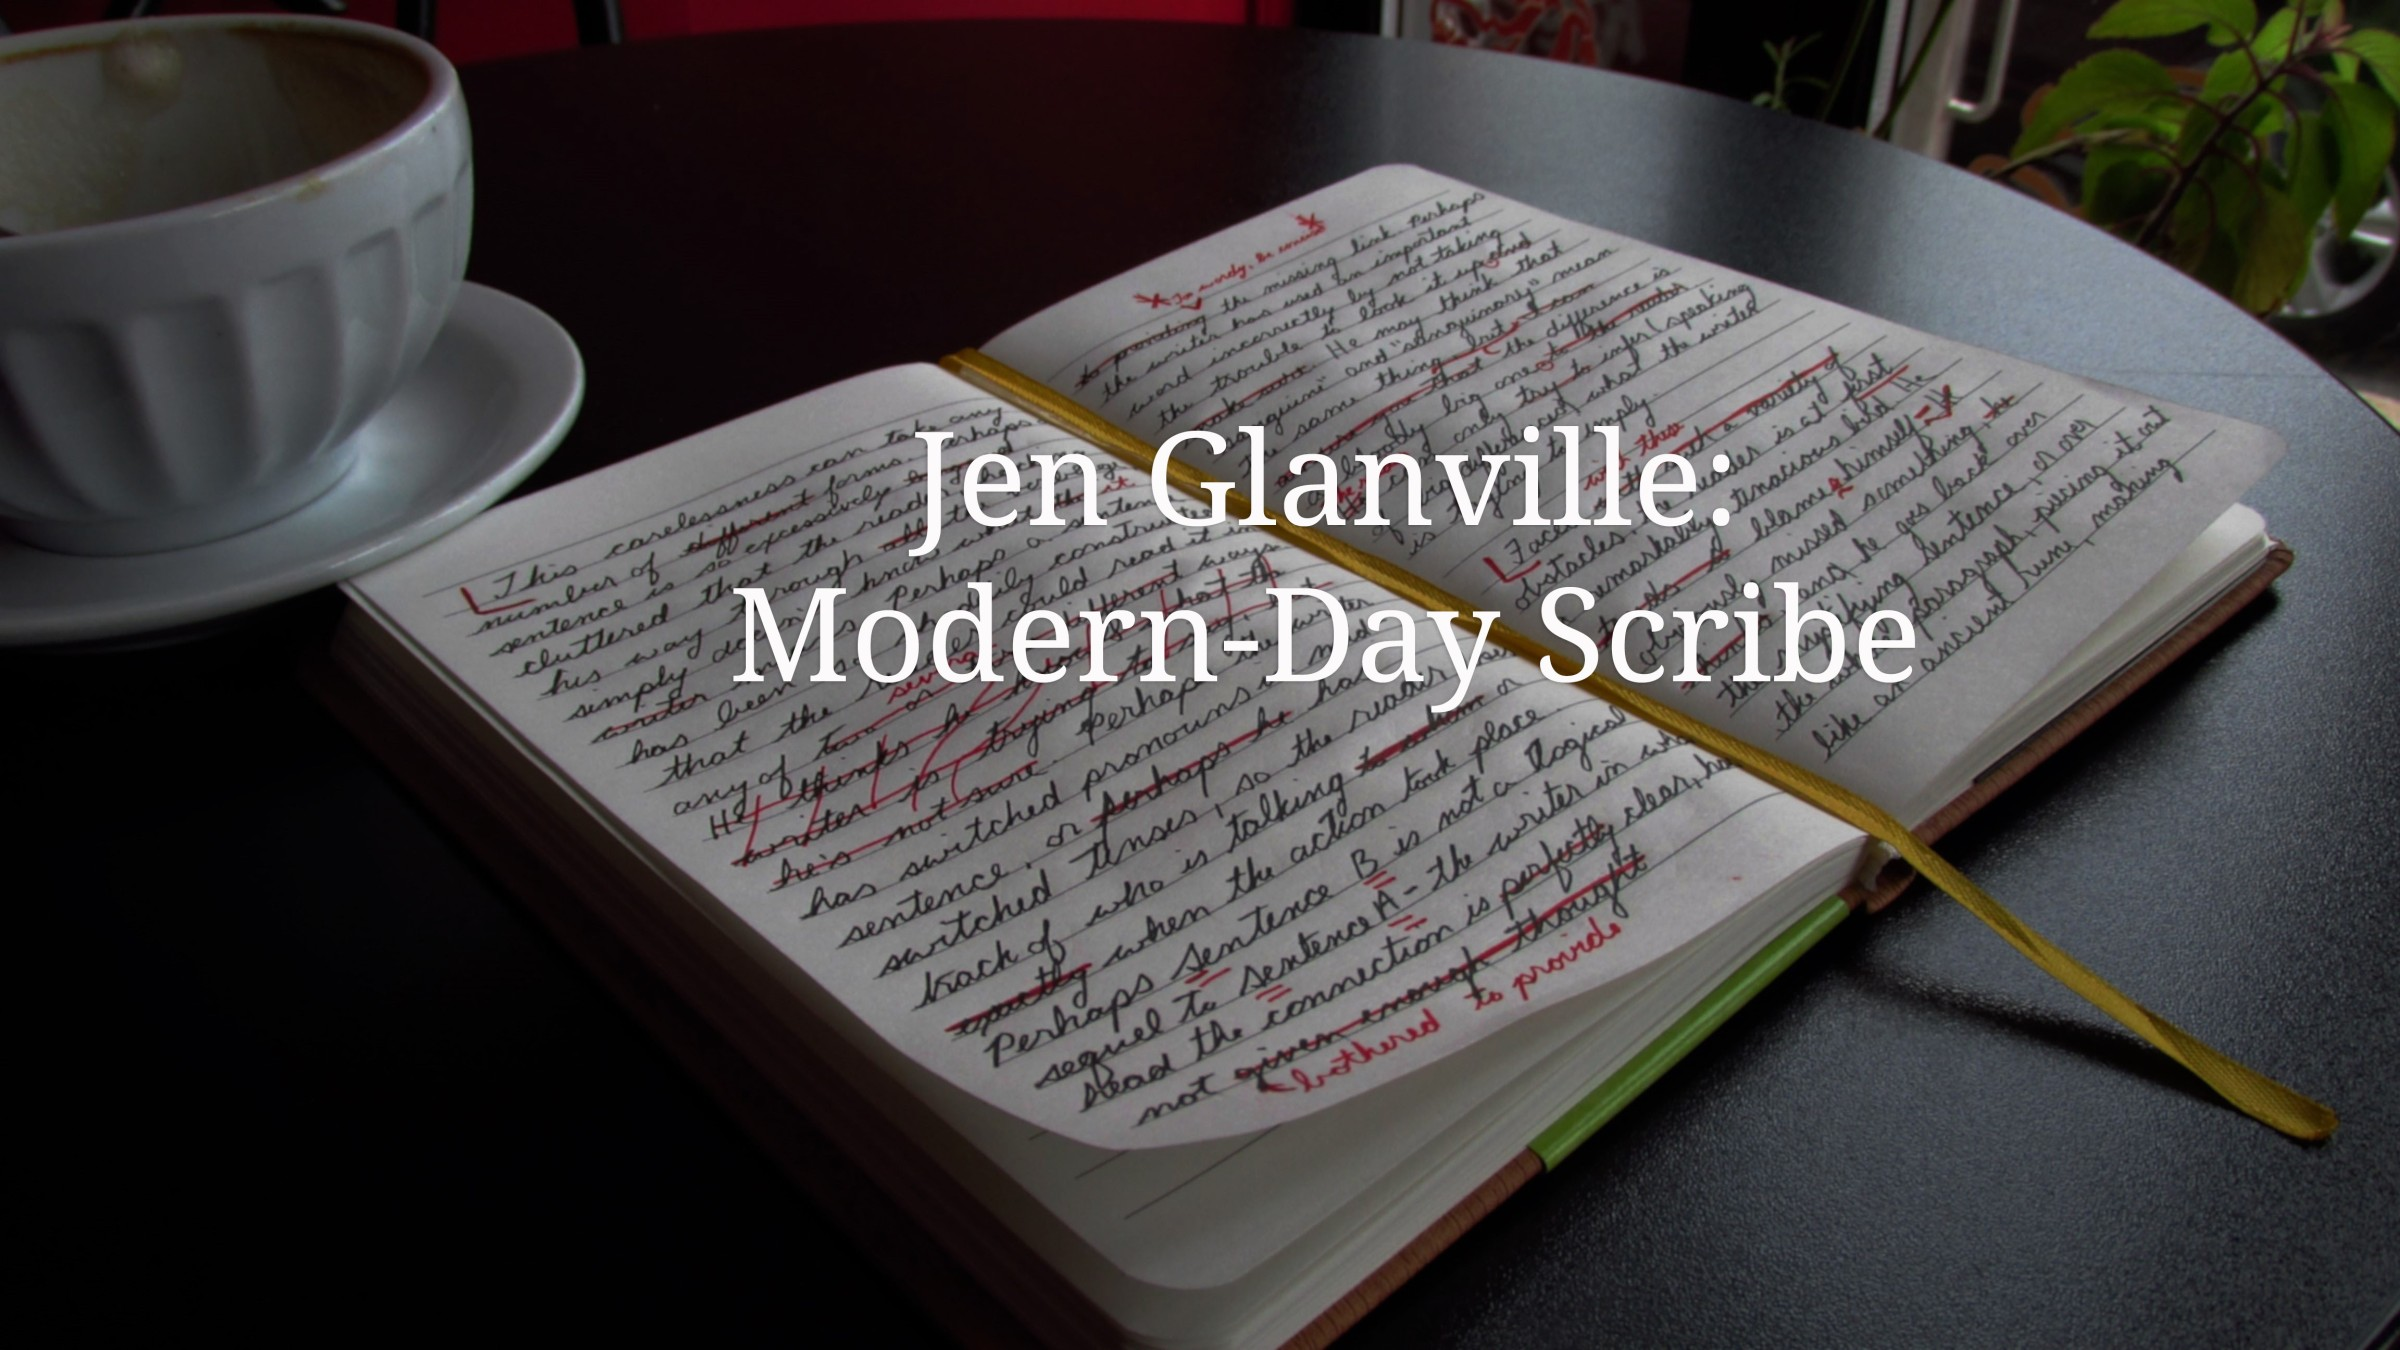 Jen Glanville: Modern-Day Scribe: Edited Notebook